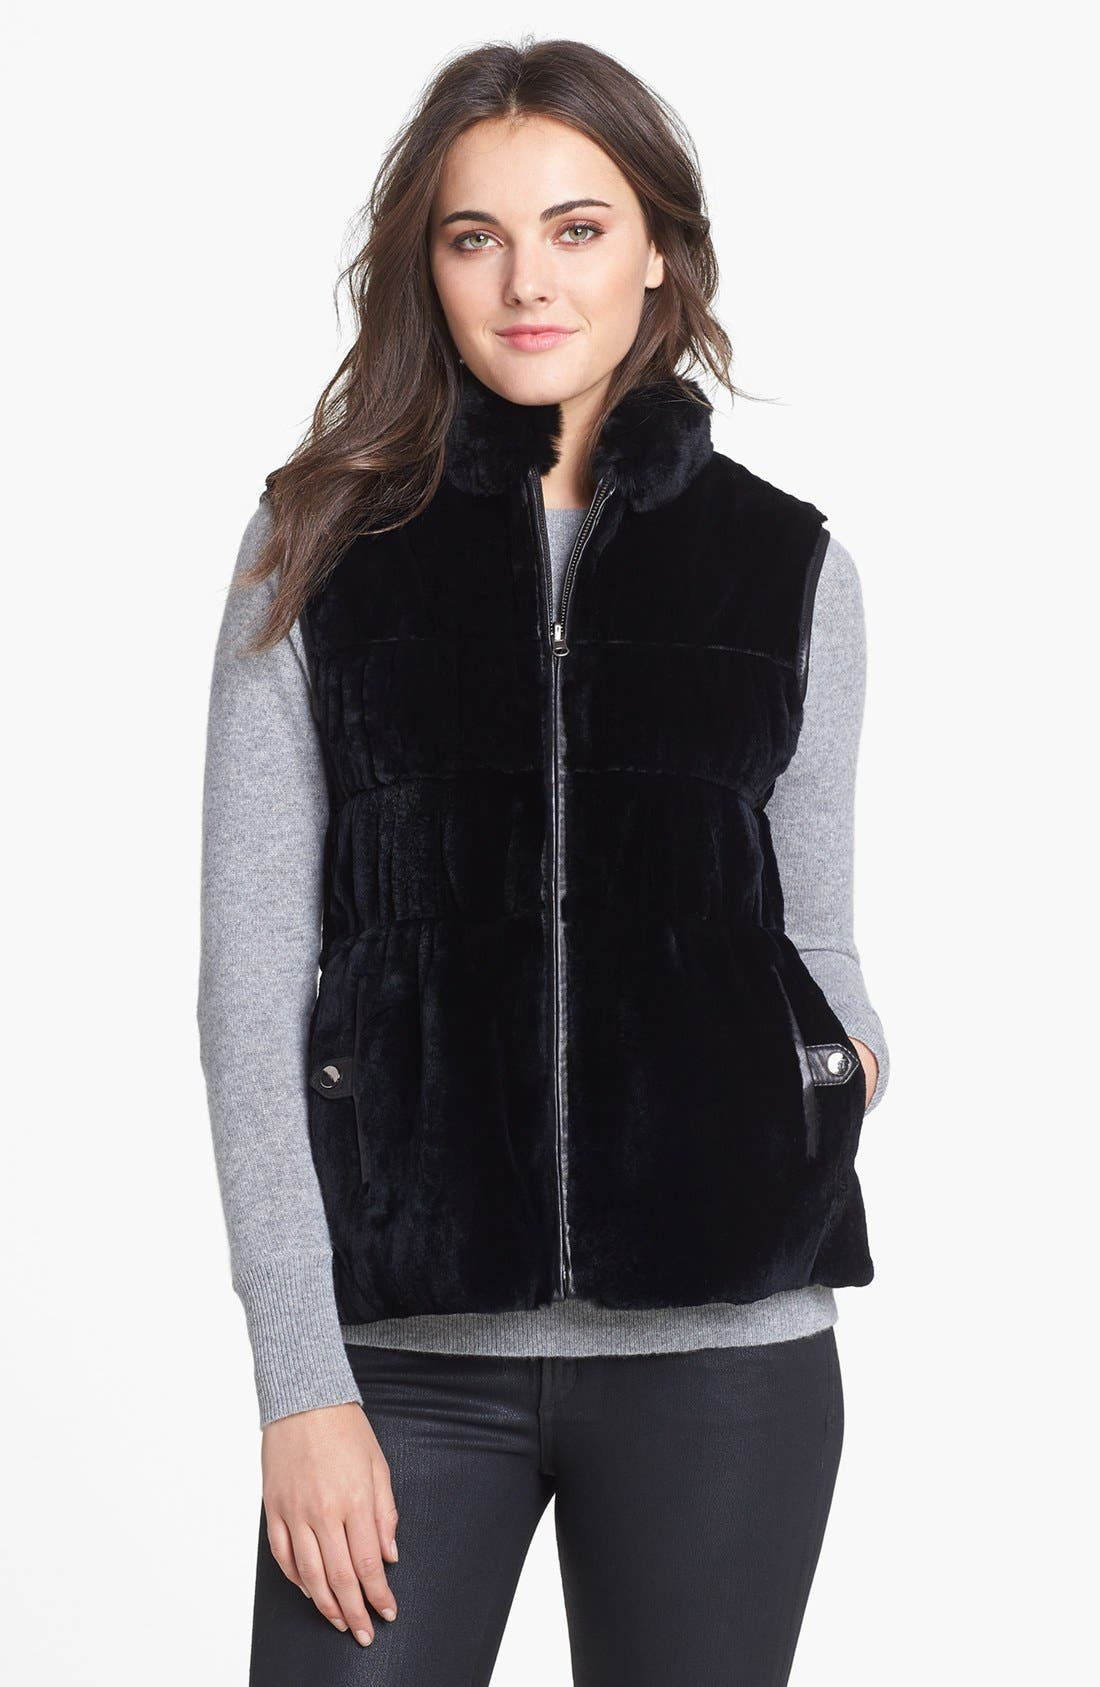 Alternate Image 1 Selected - Chosen Furs Reversible Rabbit Fur & Lambskin Leather Vest